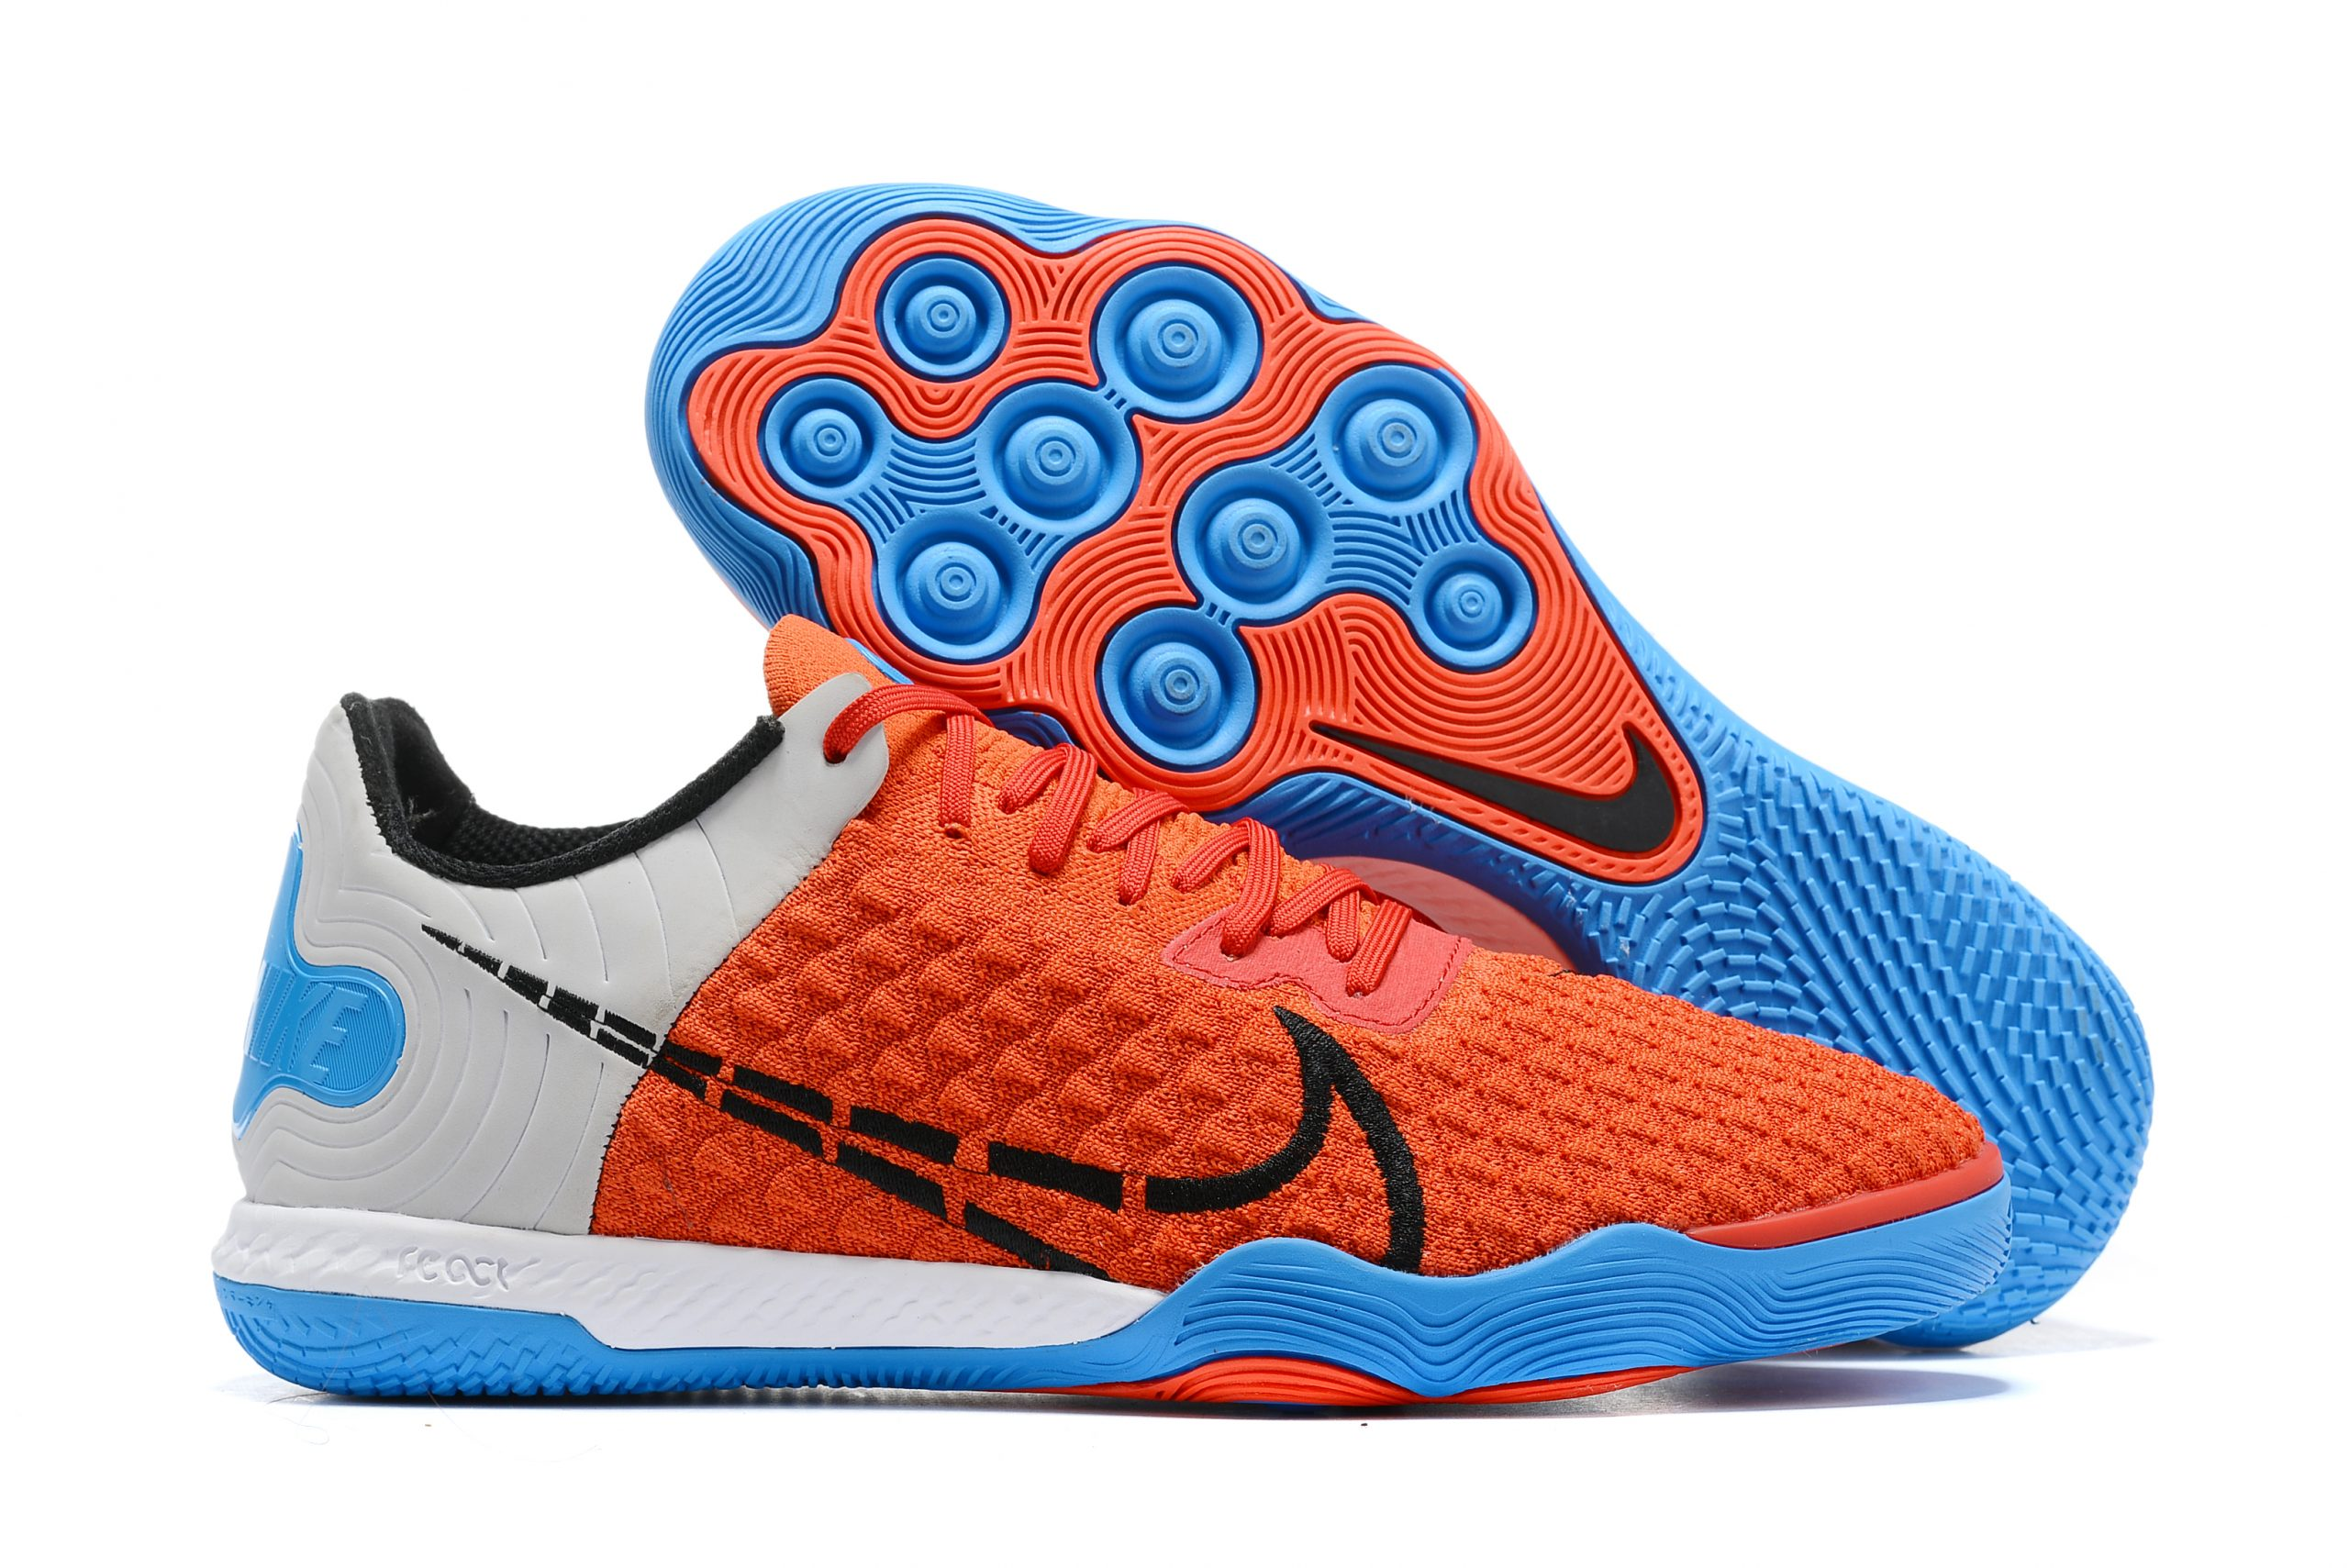 Nike Reactgato IC red and blue football boots Outside